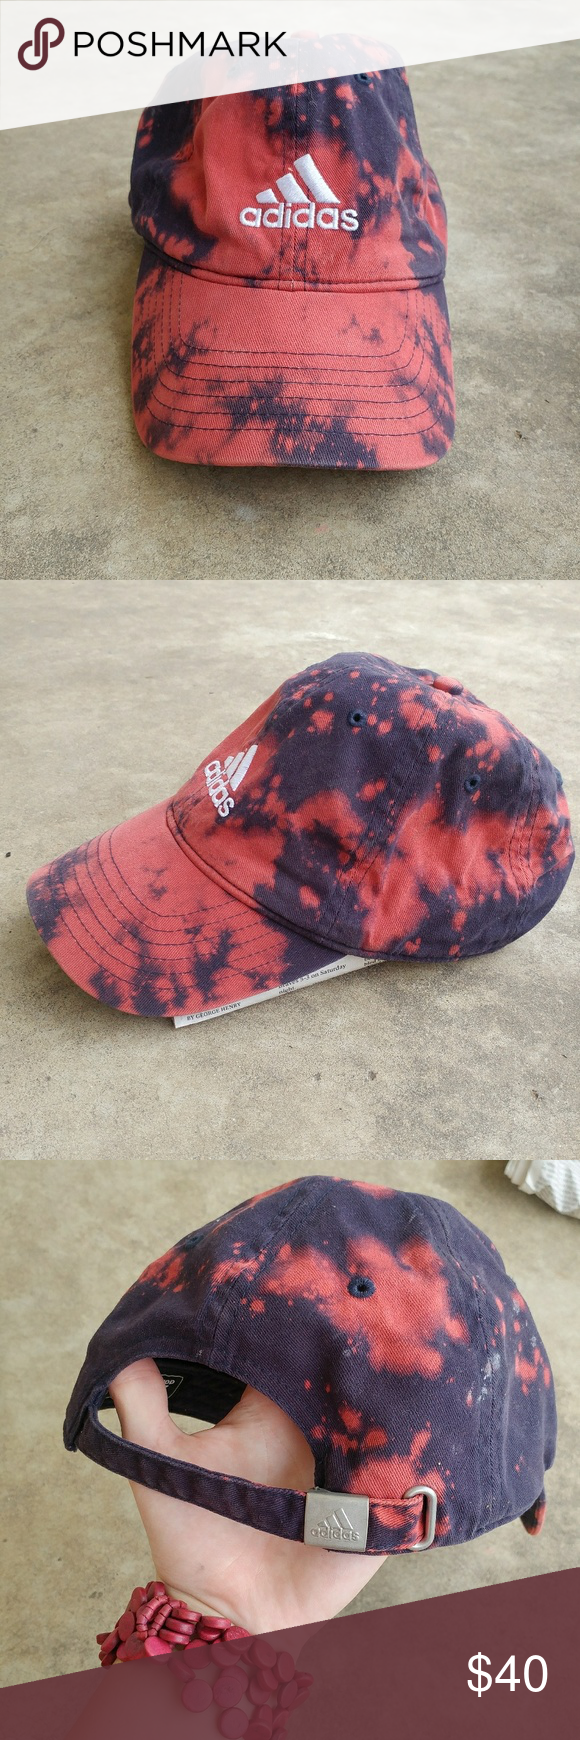 a846078a17afb Distressed Adidas Hat Navy blue hat. Bleach dyed. Distressed. One of a kind  awesome hat! Looks pinkish red and navy blue. adidas Accessories Hats